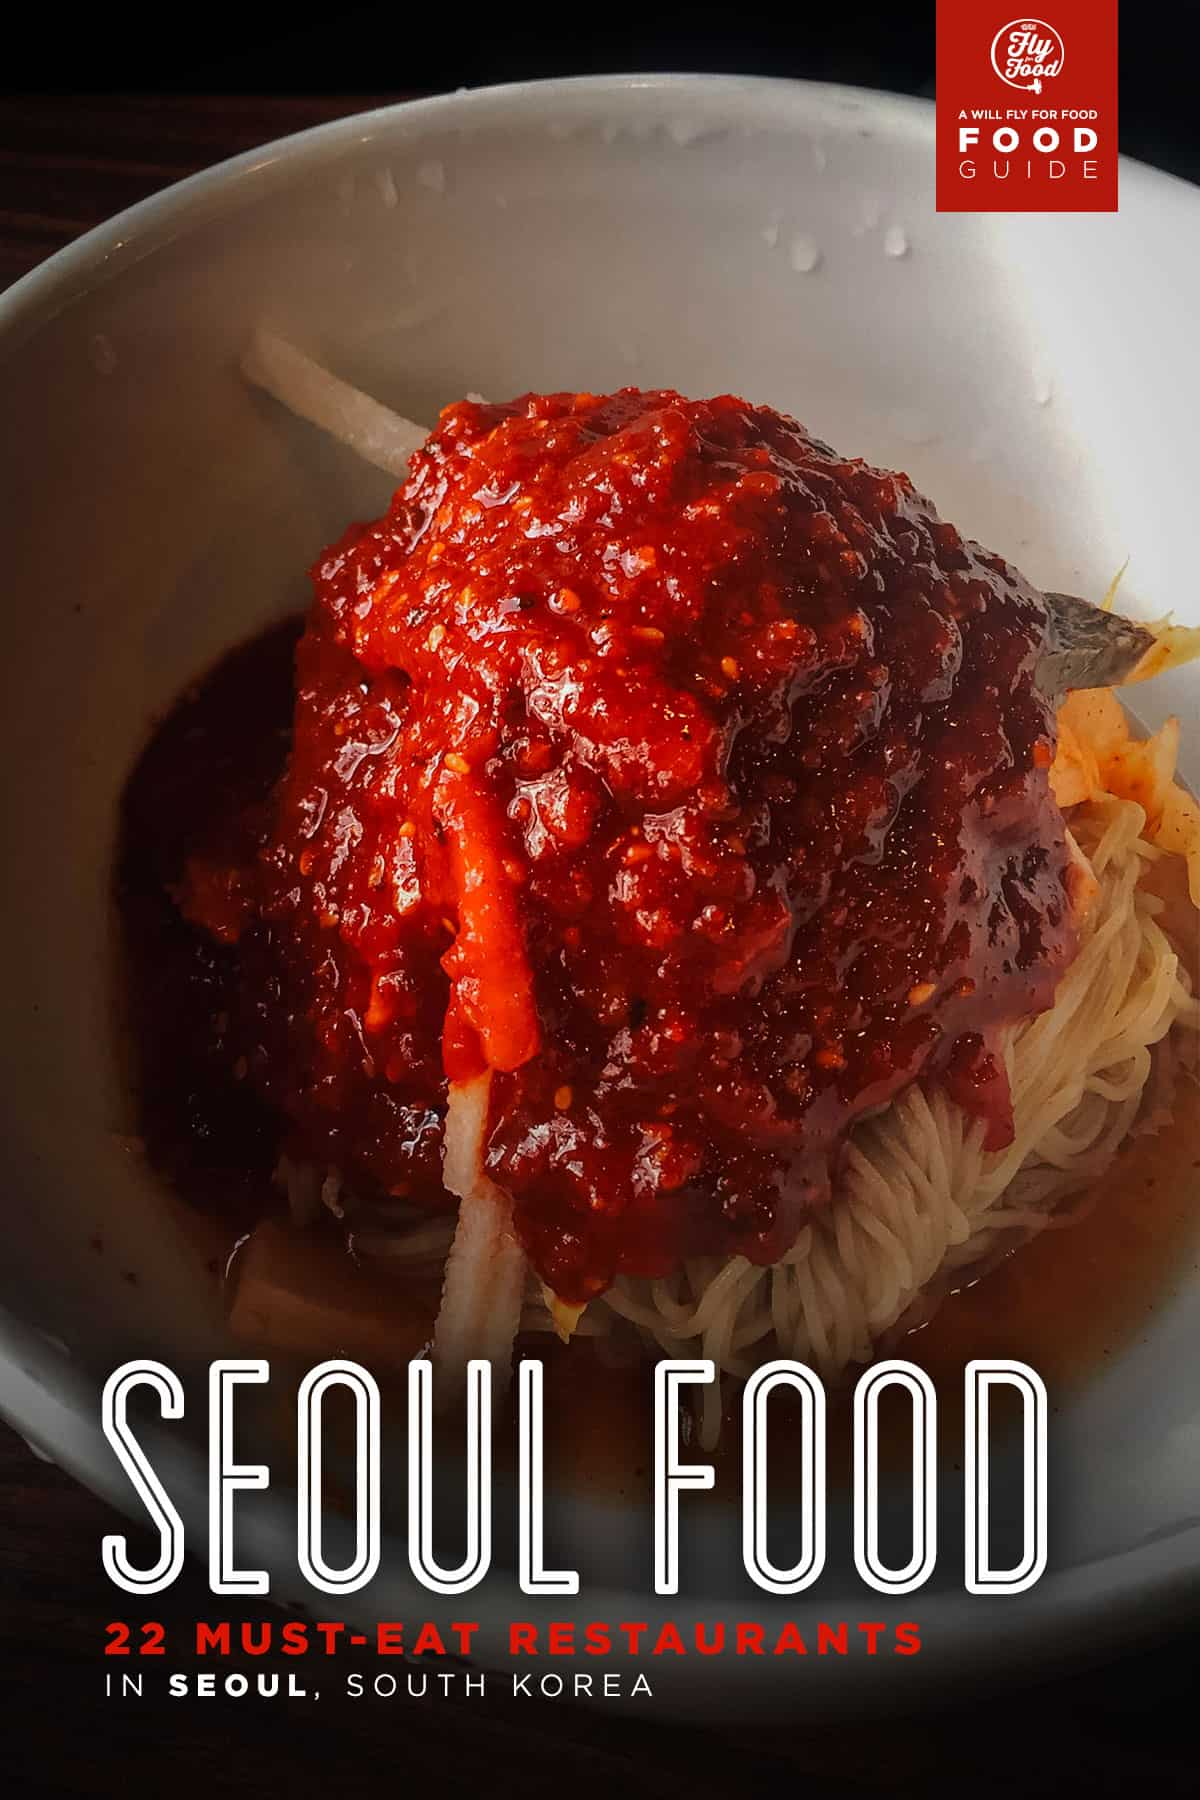 Seoul Food Guide: 22 Must-Eat Restaurants in Seoul, South